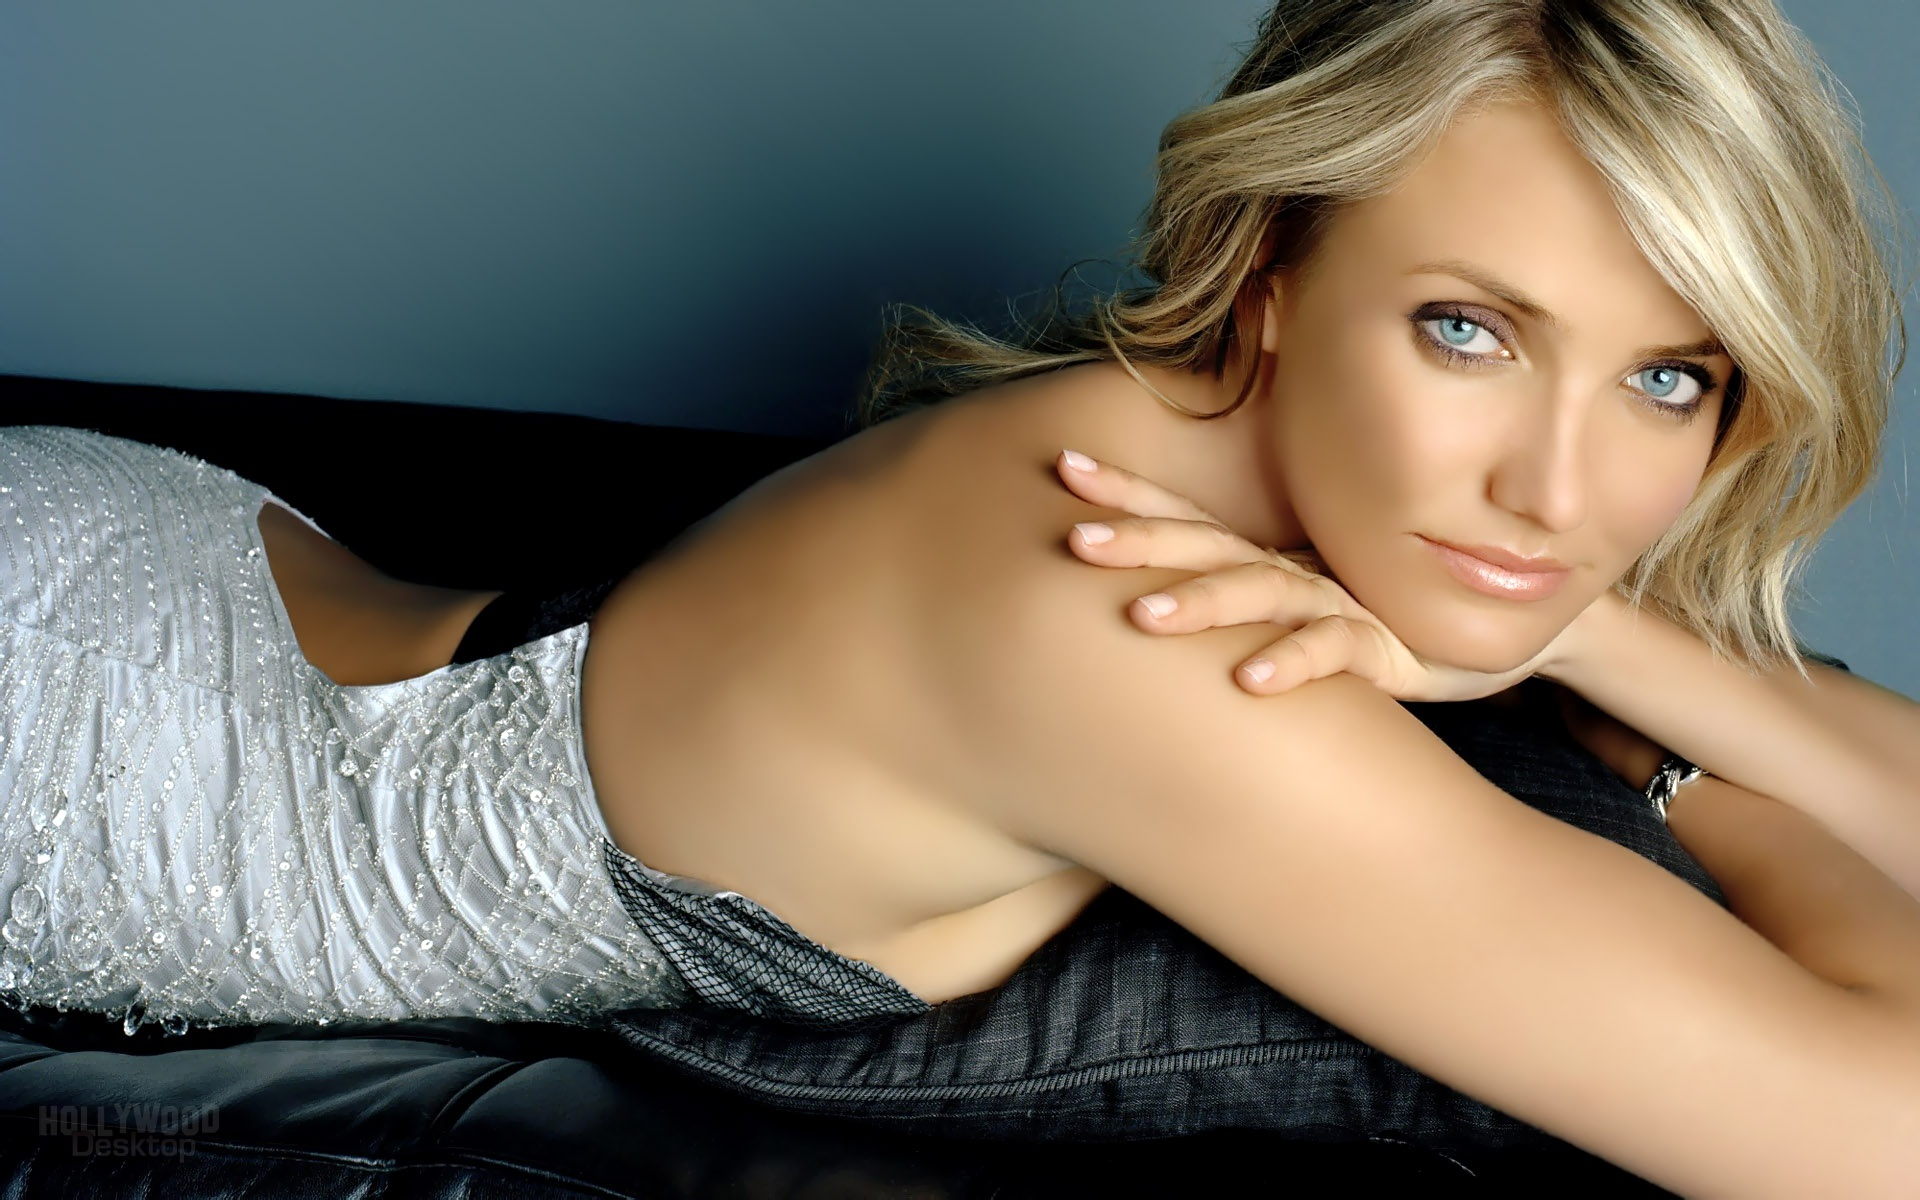 free wallpapers hd wallpapers desktop wallpapers hot cameron diaz. Black Bedroom Furniture Sets. Home Design Ideas